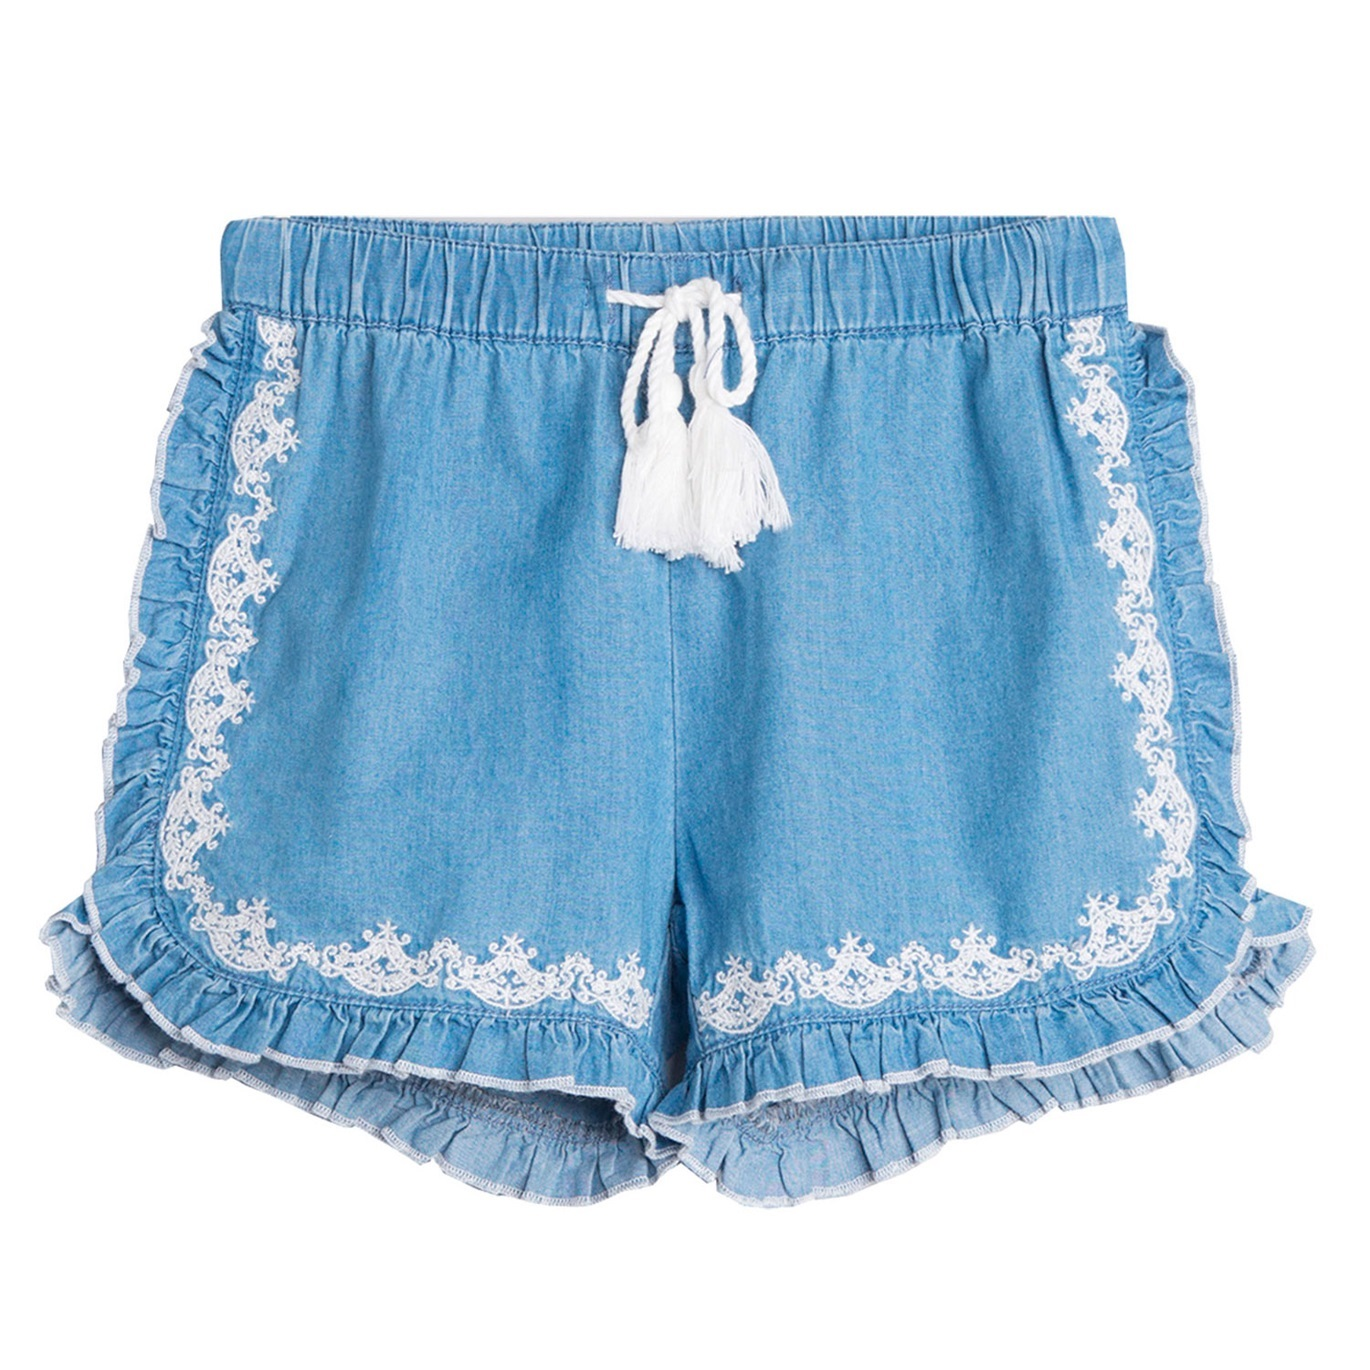 41db52516 Short de niña en denim bordado